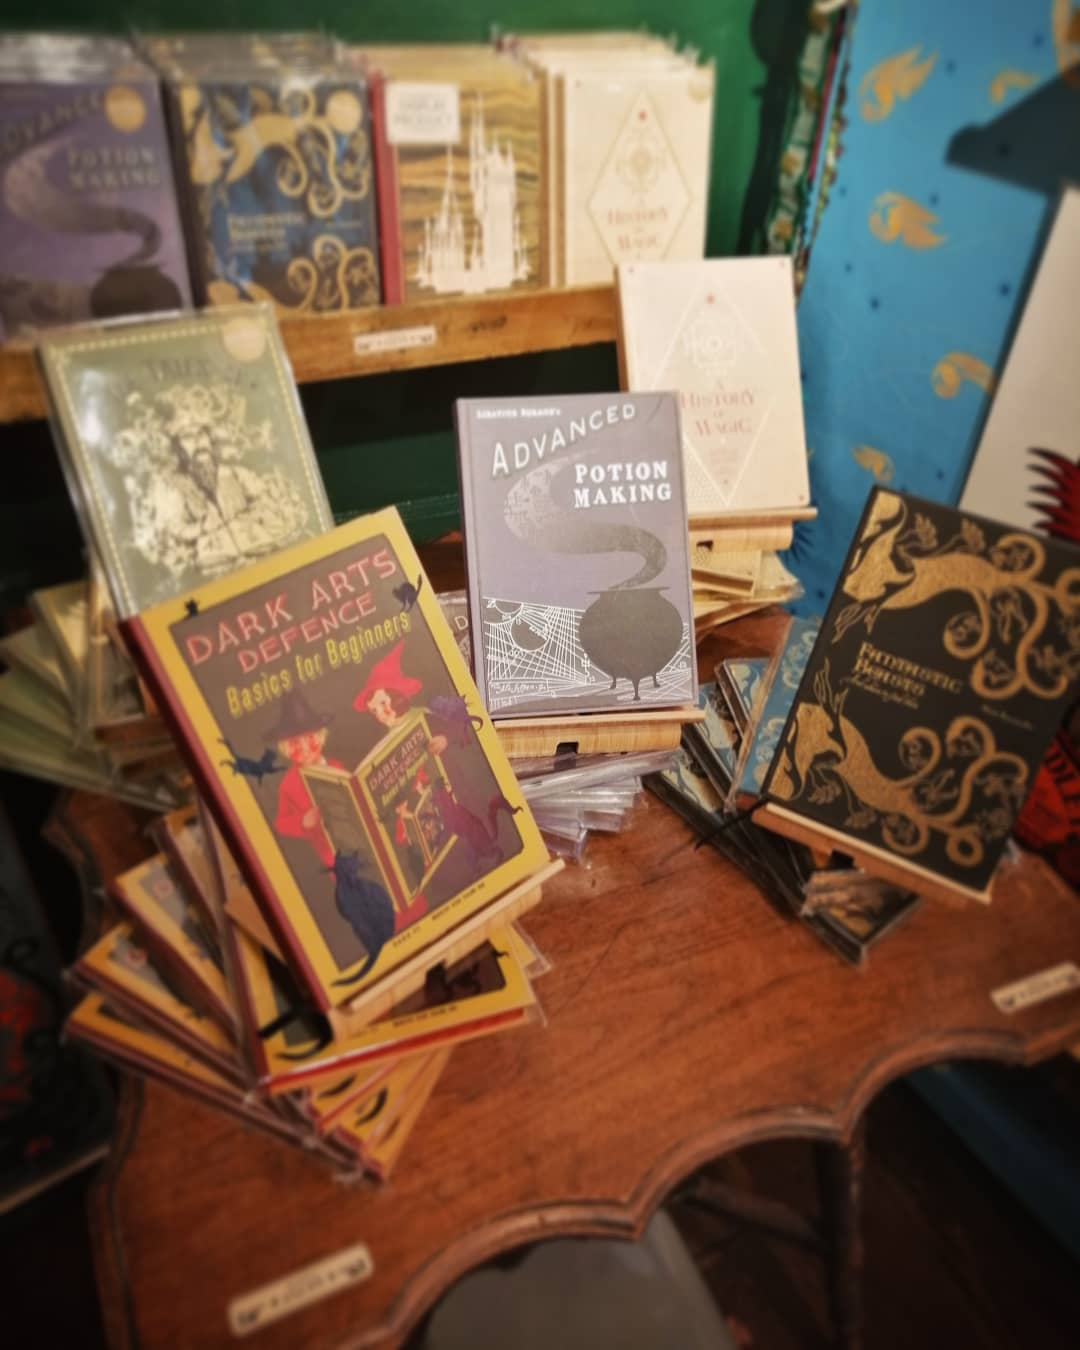 You can get a good look at all the Hogwarts textbooks in real life in MinaLima's gallery.